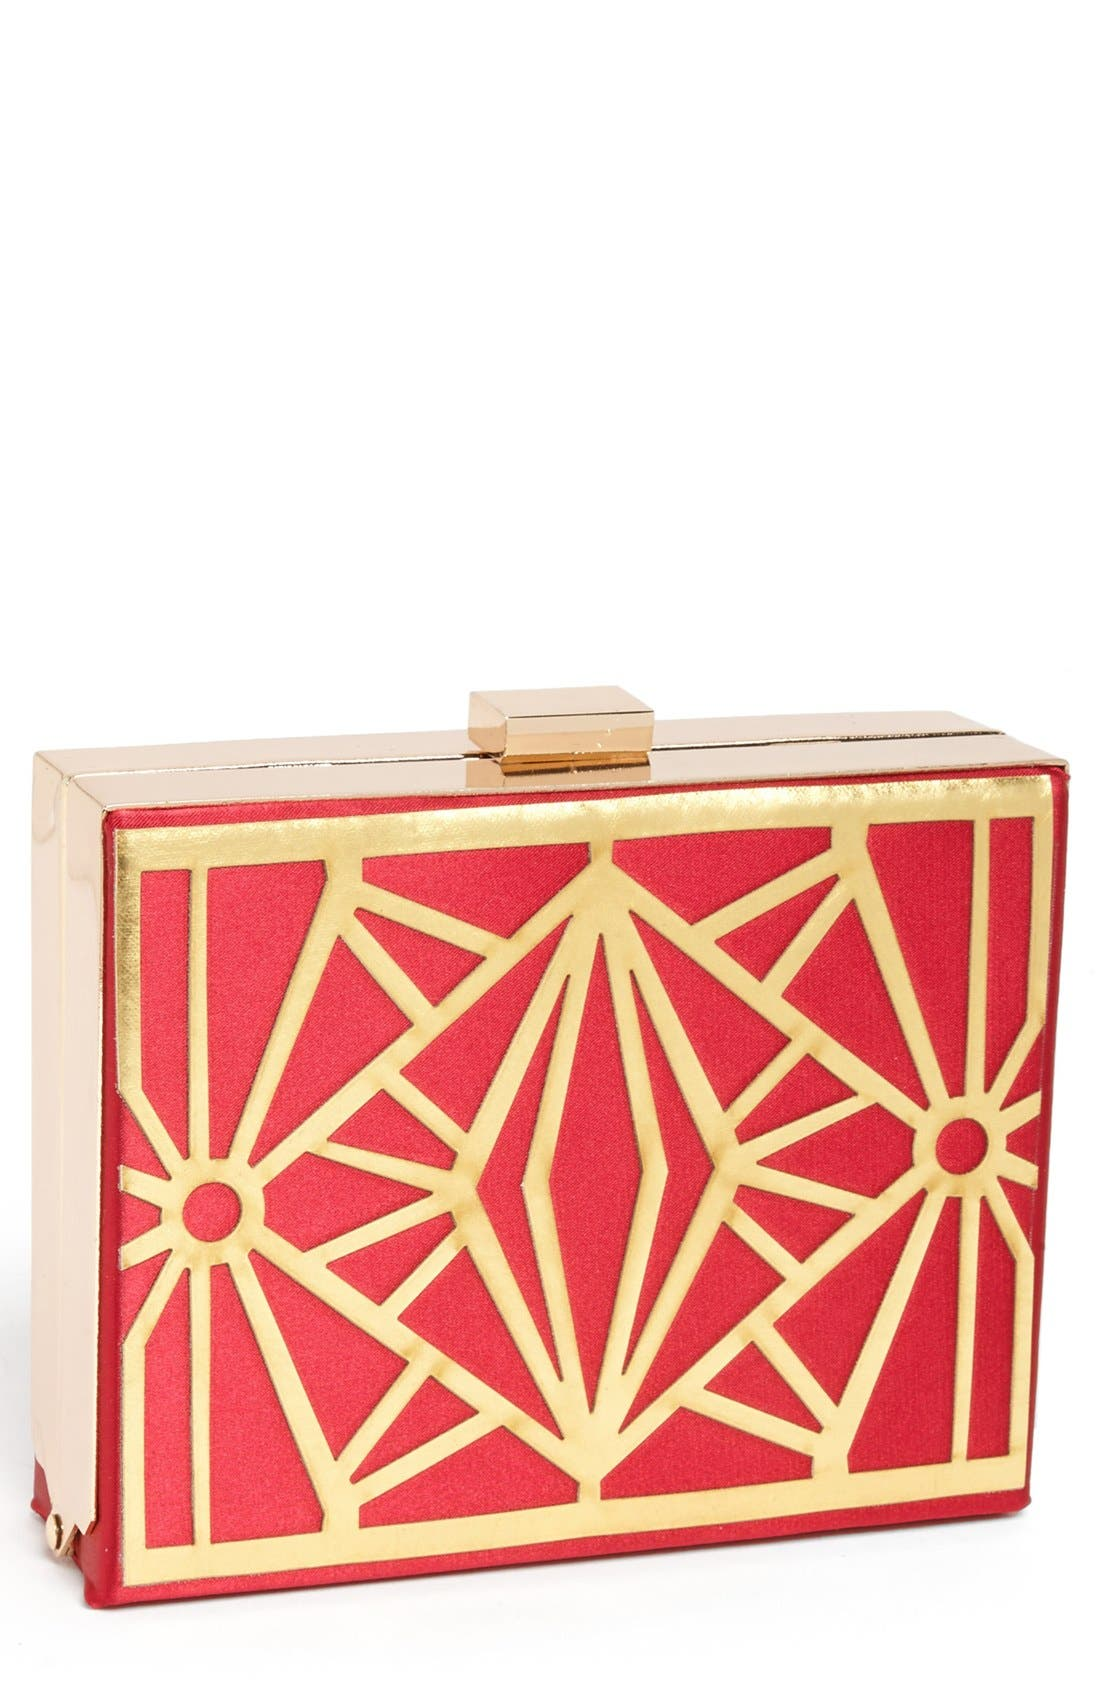 Main Image - Natasha Couture Metal Box Clutch